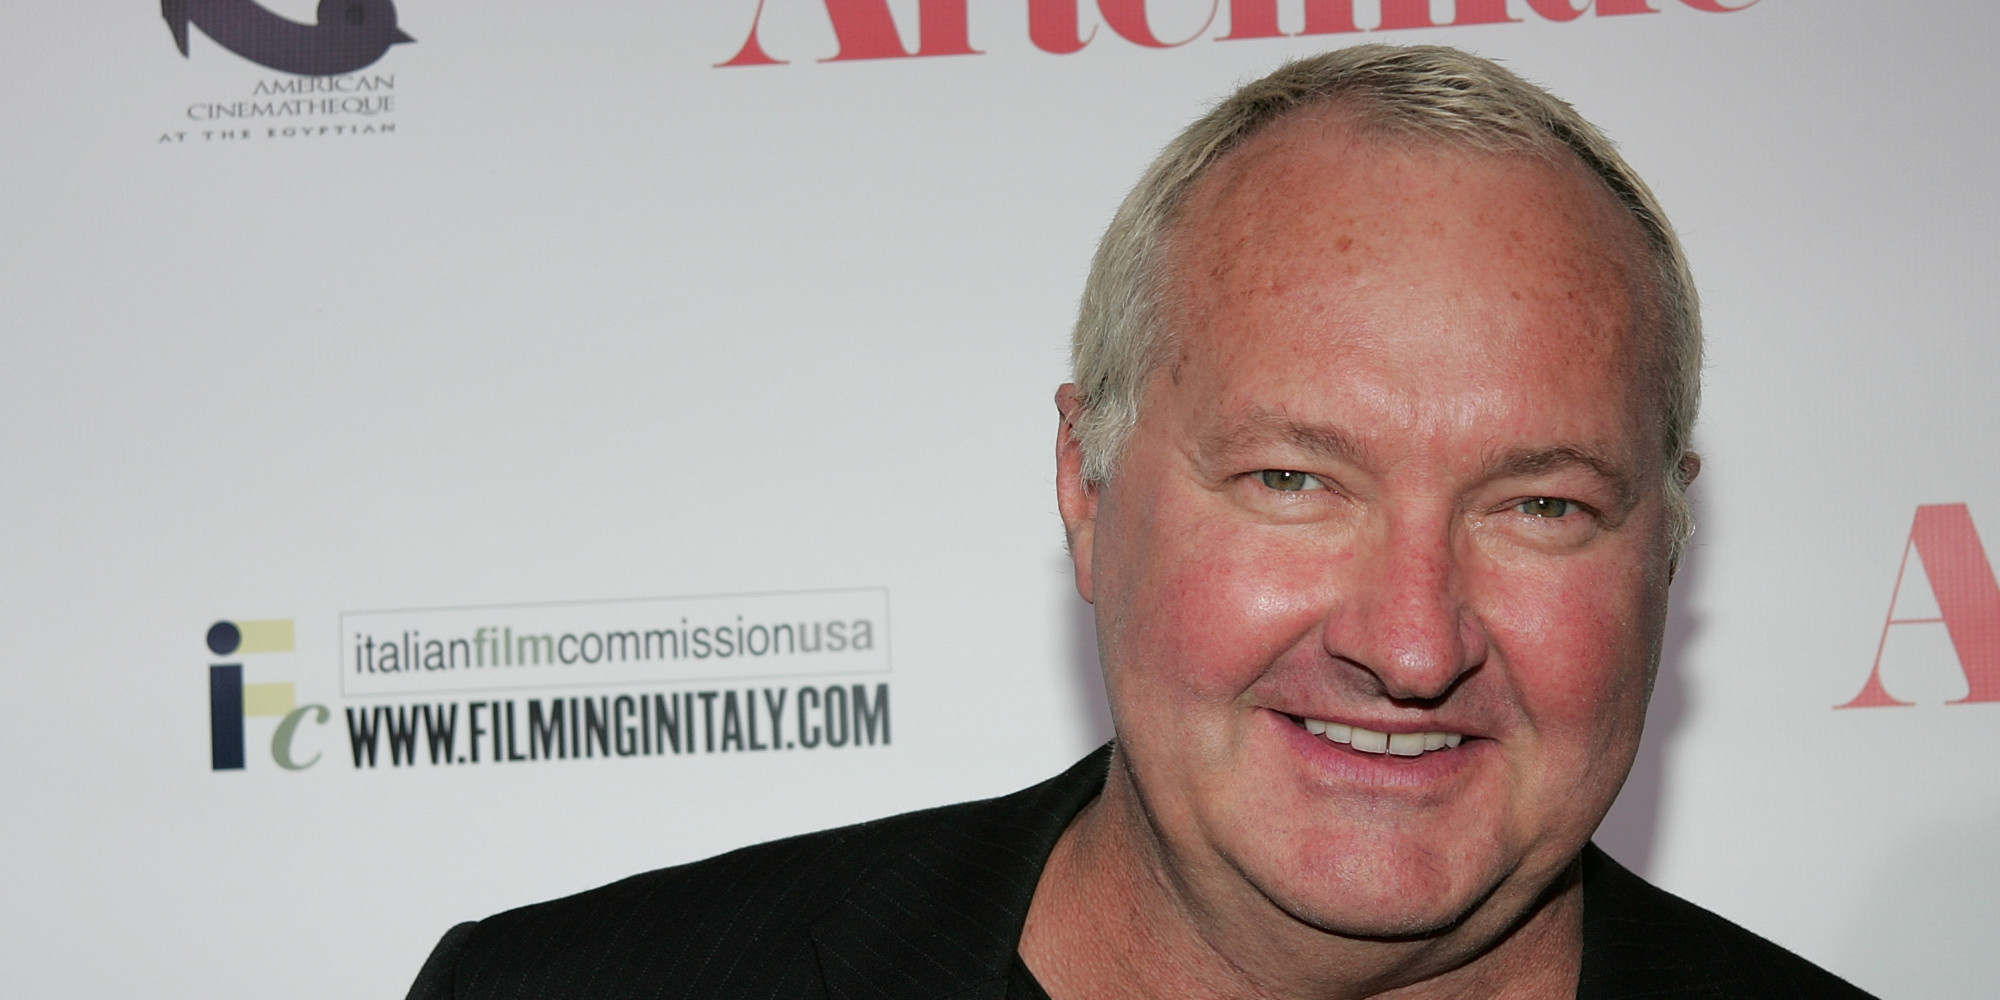 Randy Quaid Filmography - How many have you seen?